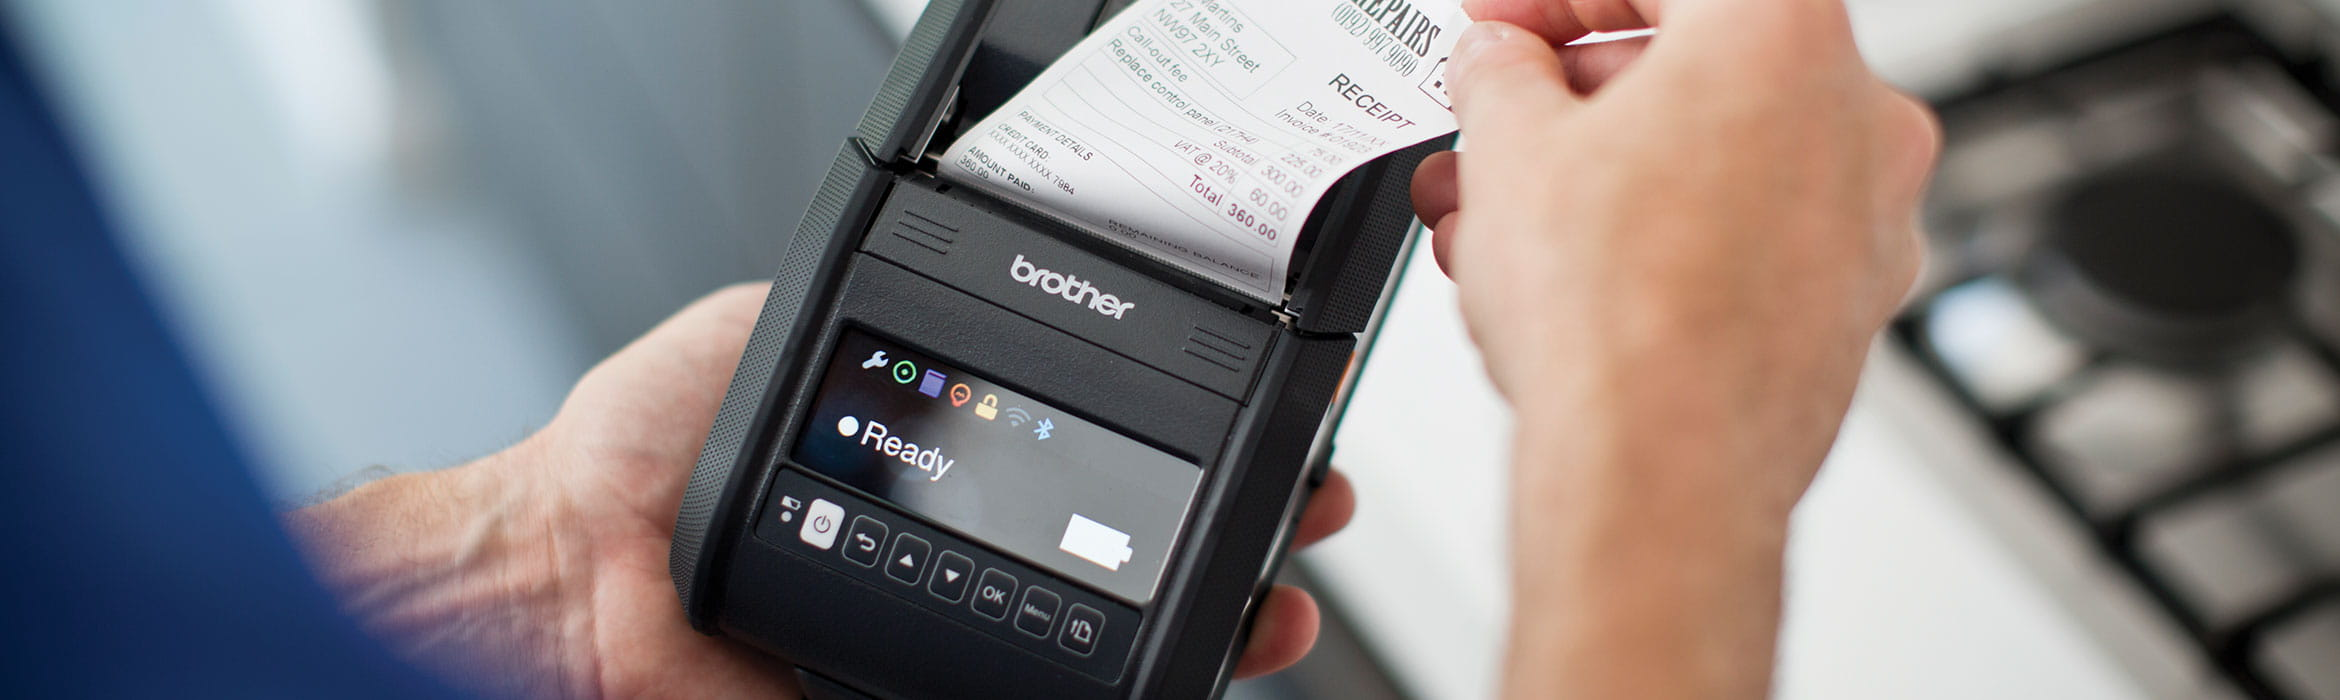 Man removing receipt from Brother handheld mobile printer